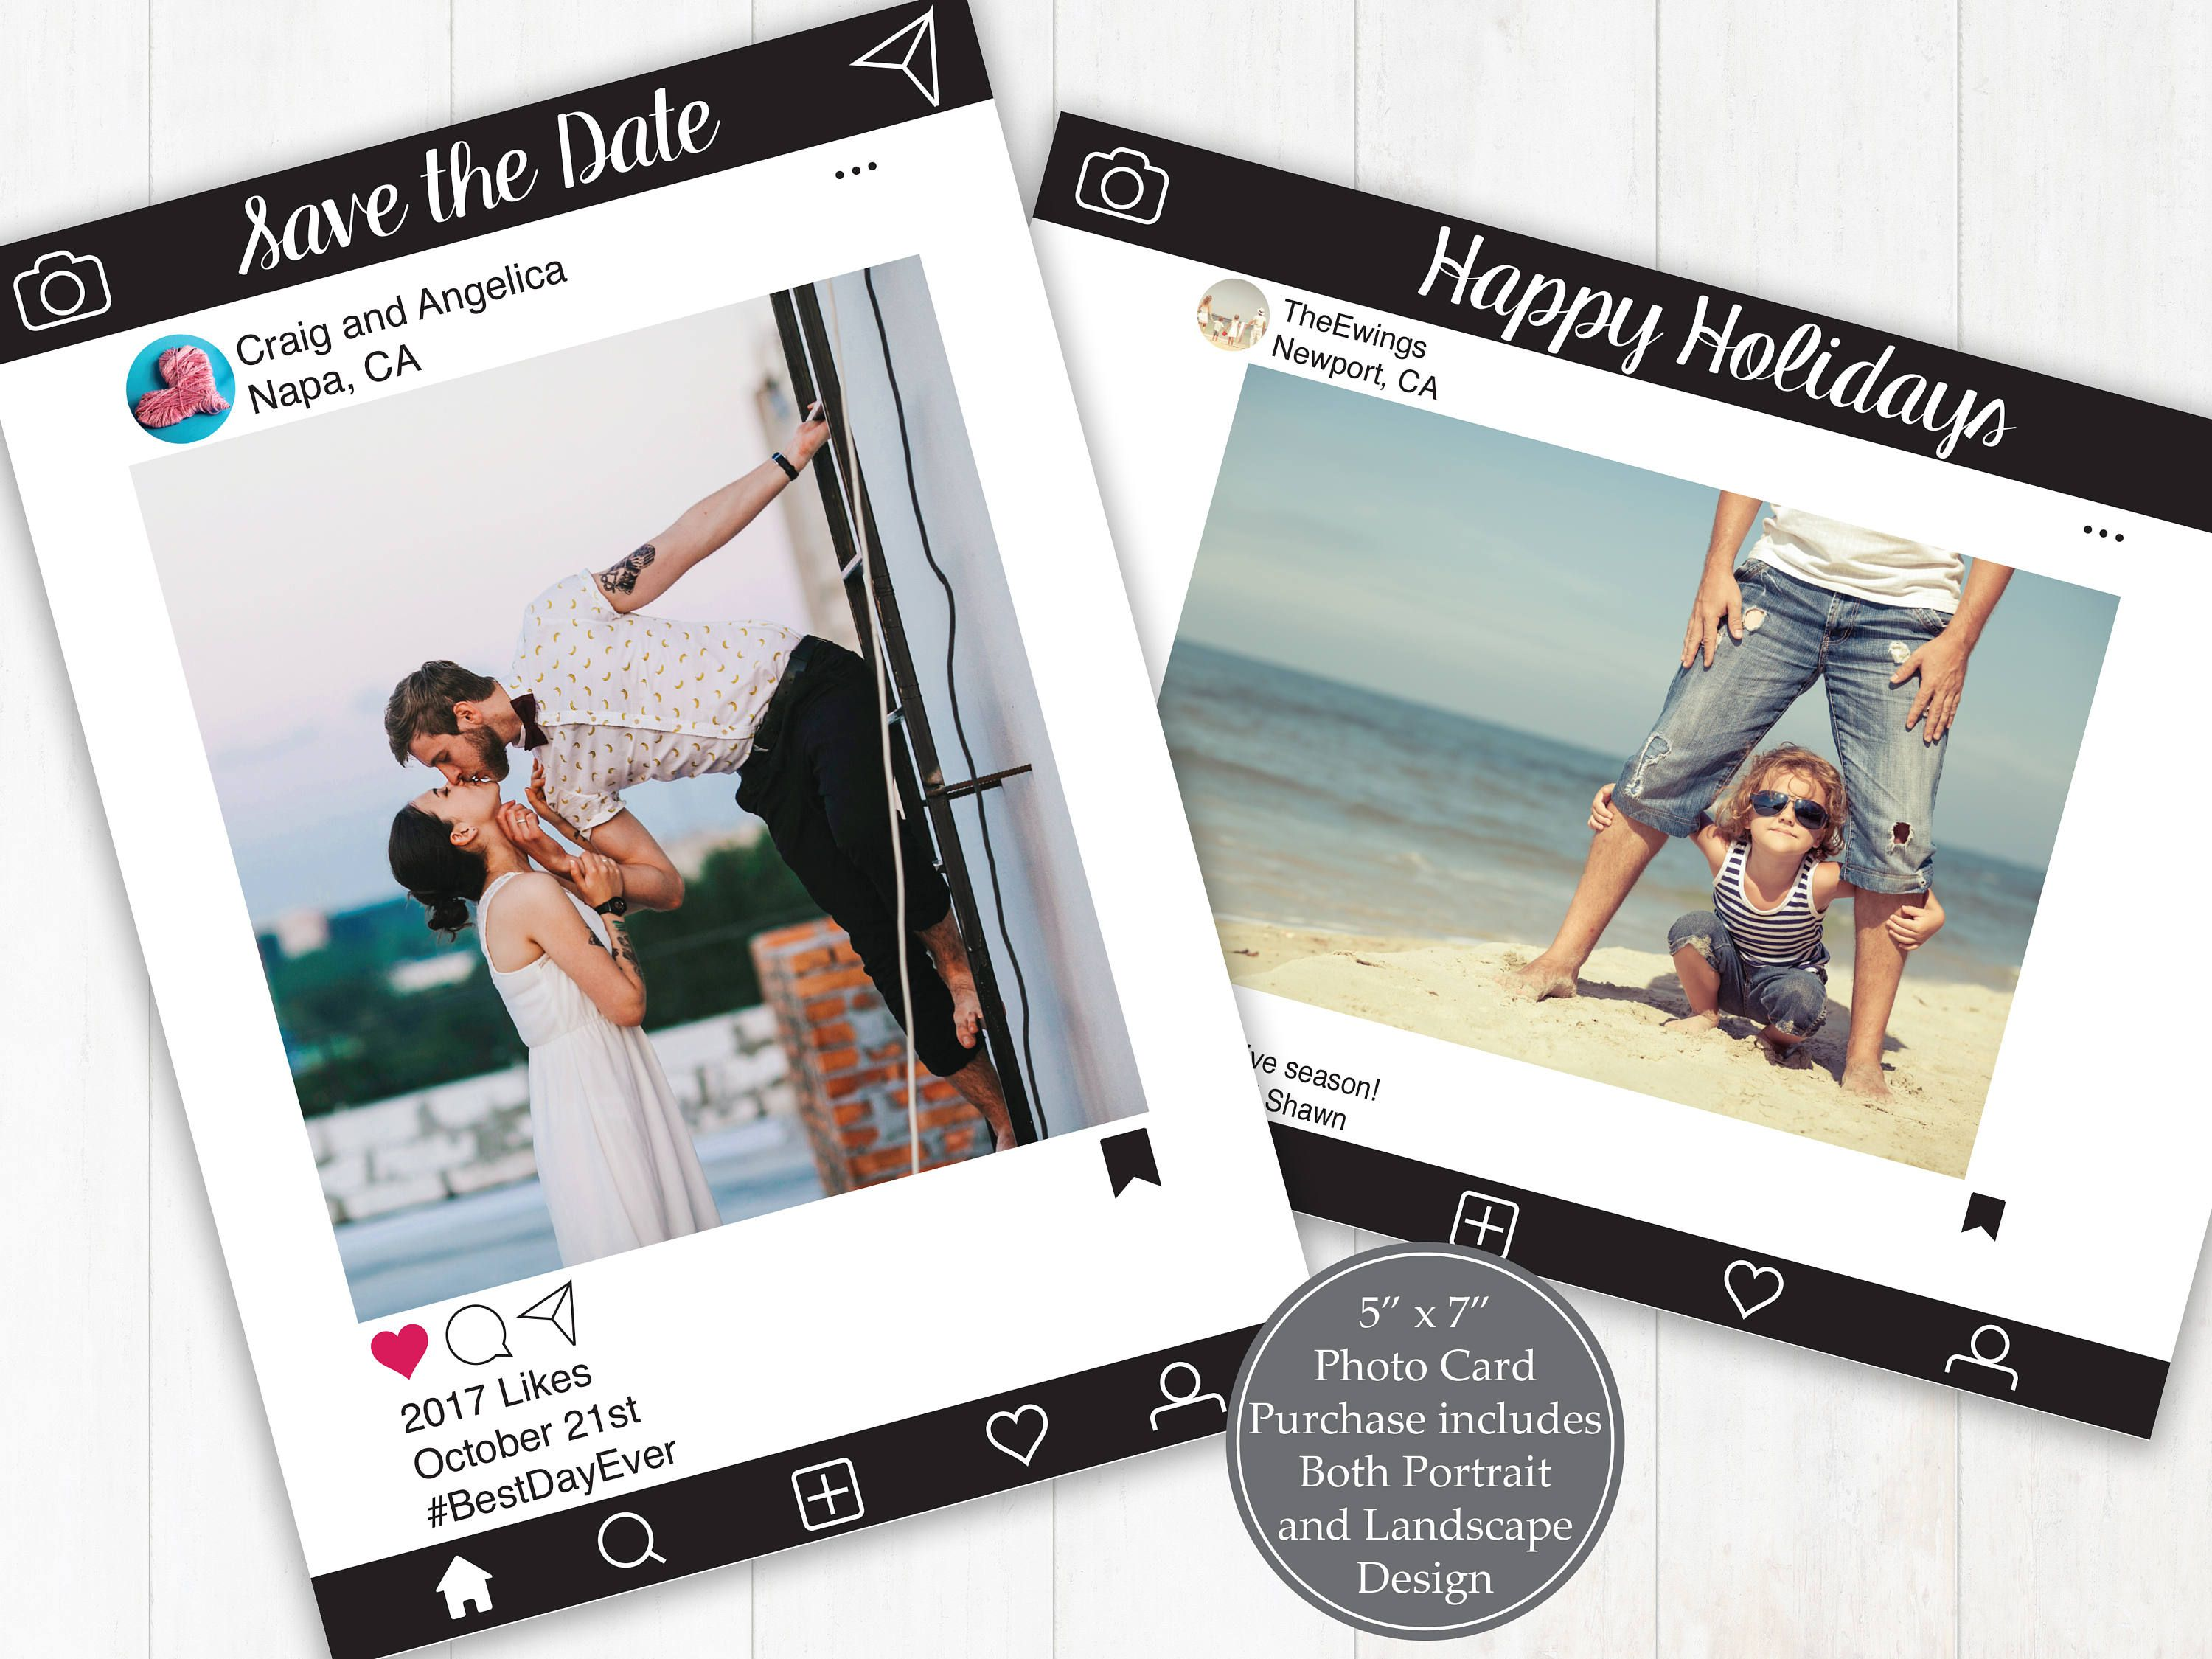 Editable Photo Card Save The Date Invitation Christmas Card Announcement Sip And See Black Instagr Photo Cards Social Media Instagram Social Media Design